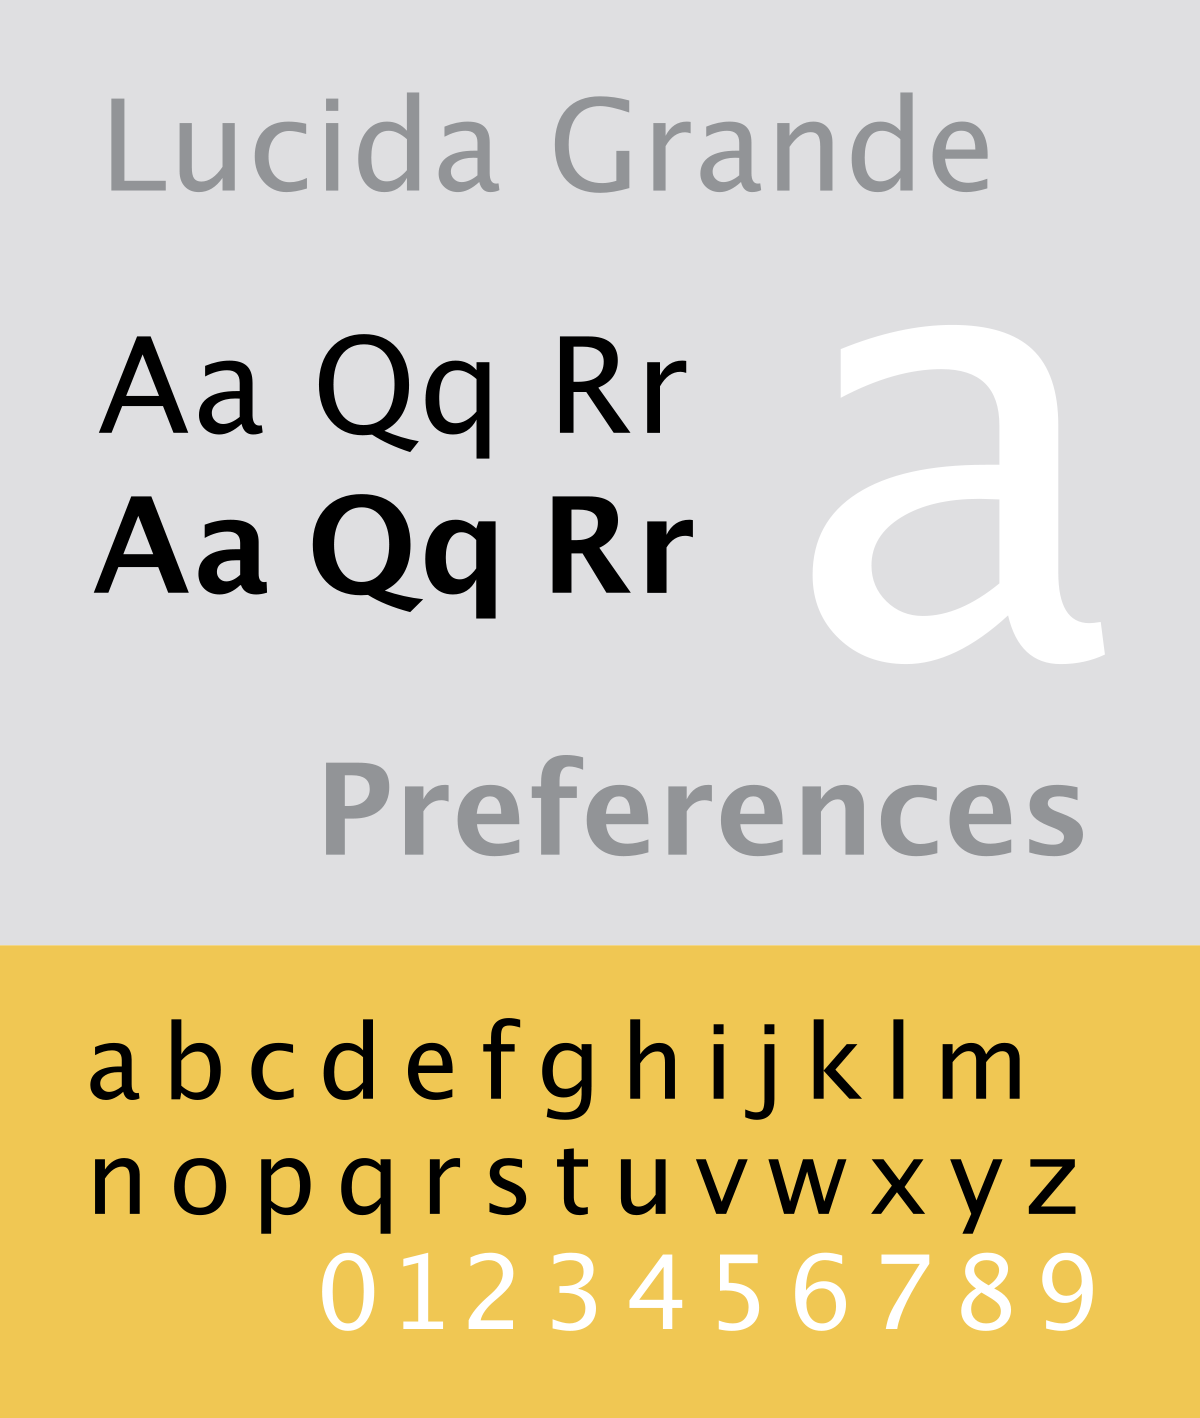 Lucida Console - The Best & Worst Fonts for Your Resume